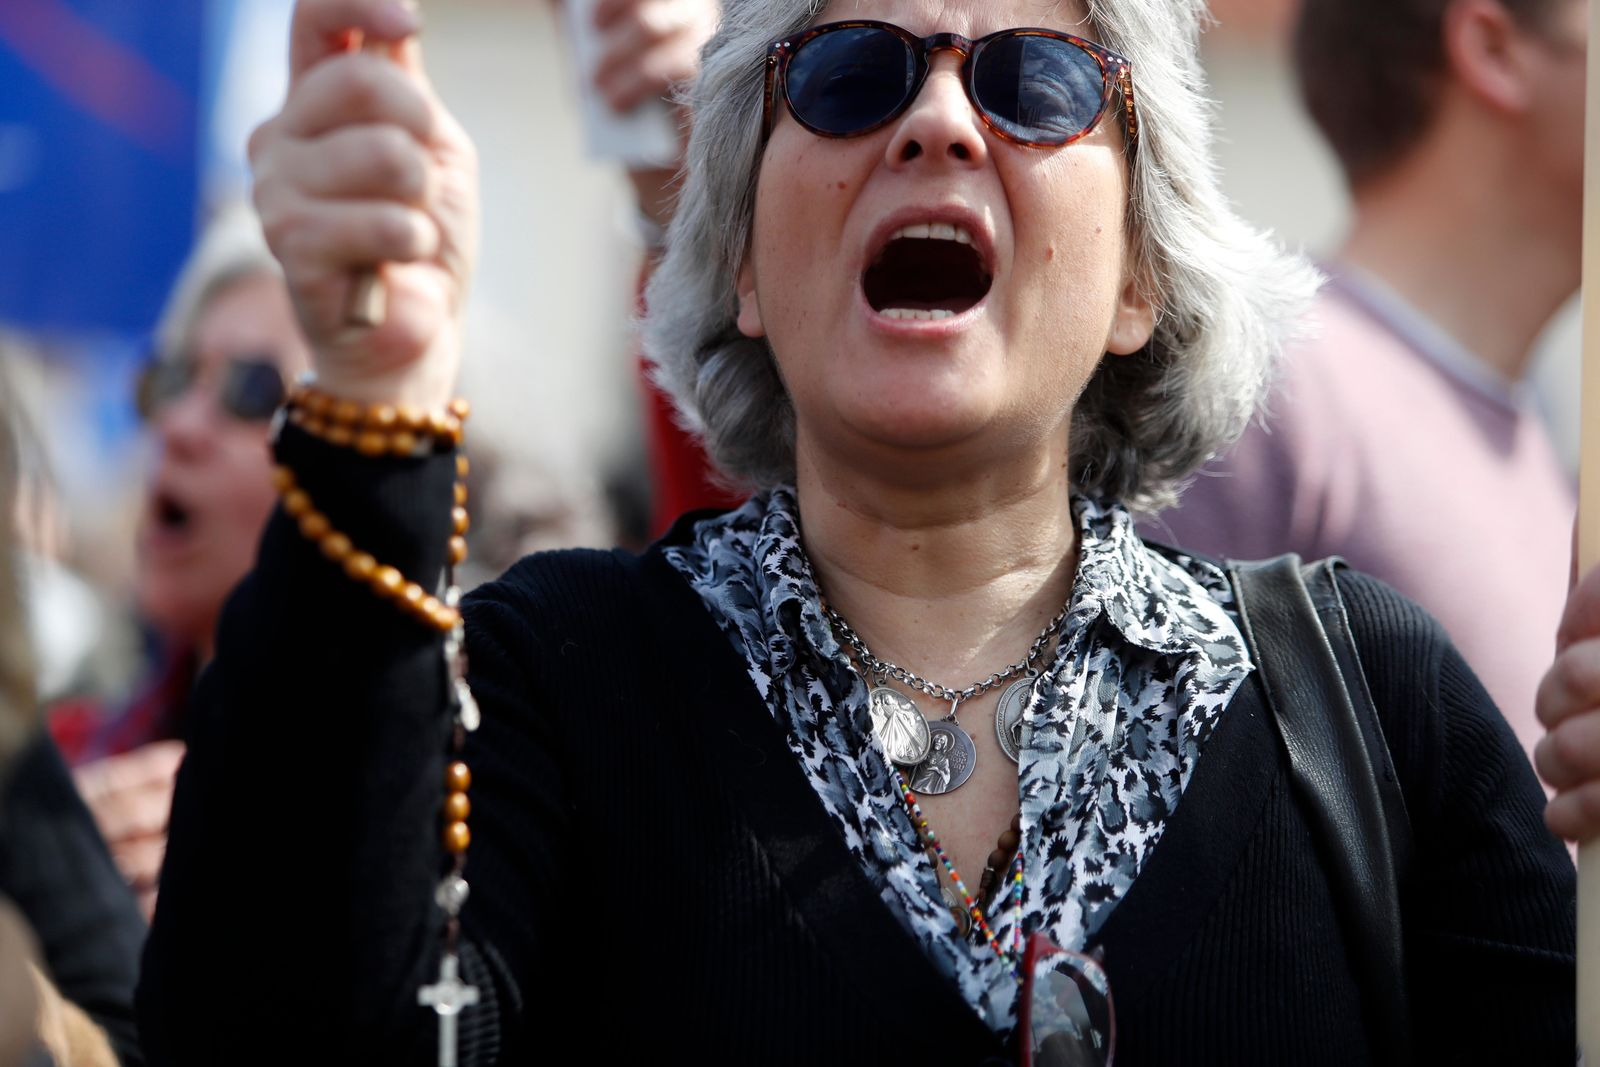 A demonstrator shouts slogans during a protest outside the Portuguese parliament in Lisbon, Thursday, Feb. 20, 2020. (AP Photo/Armando Franca)